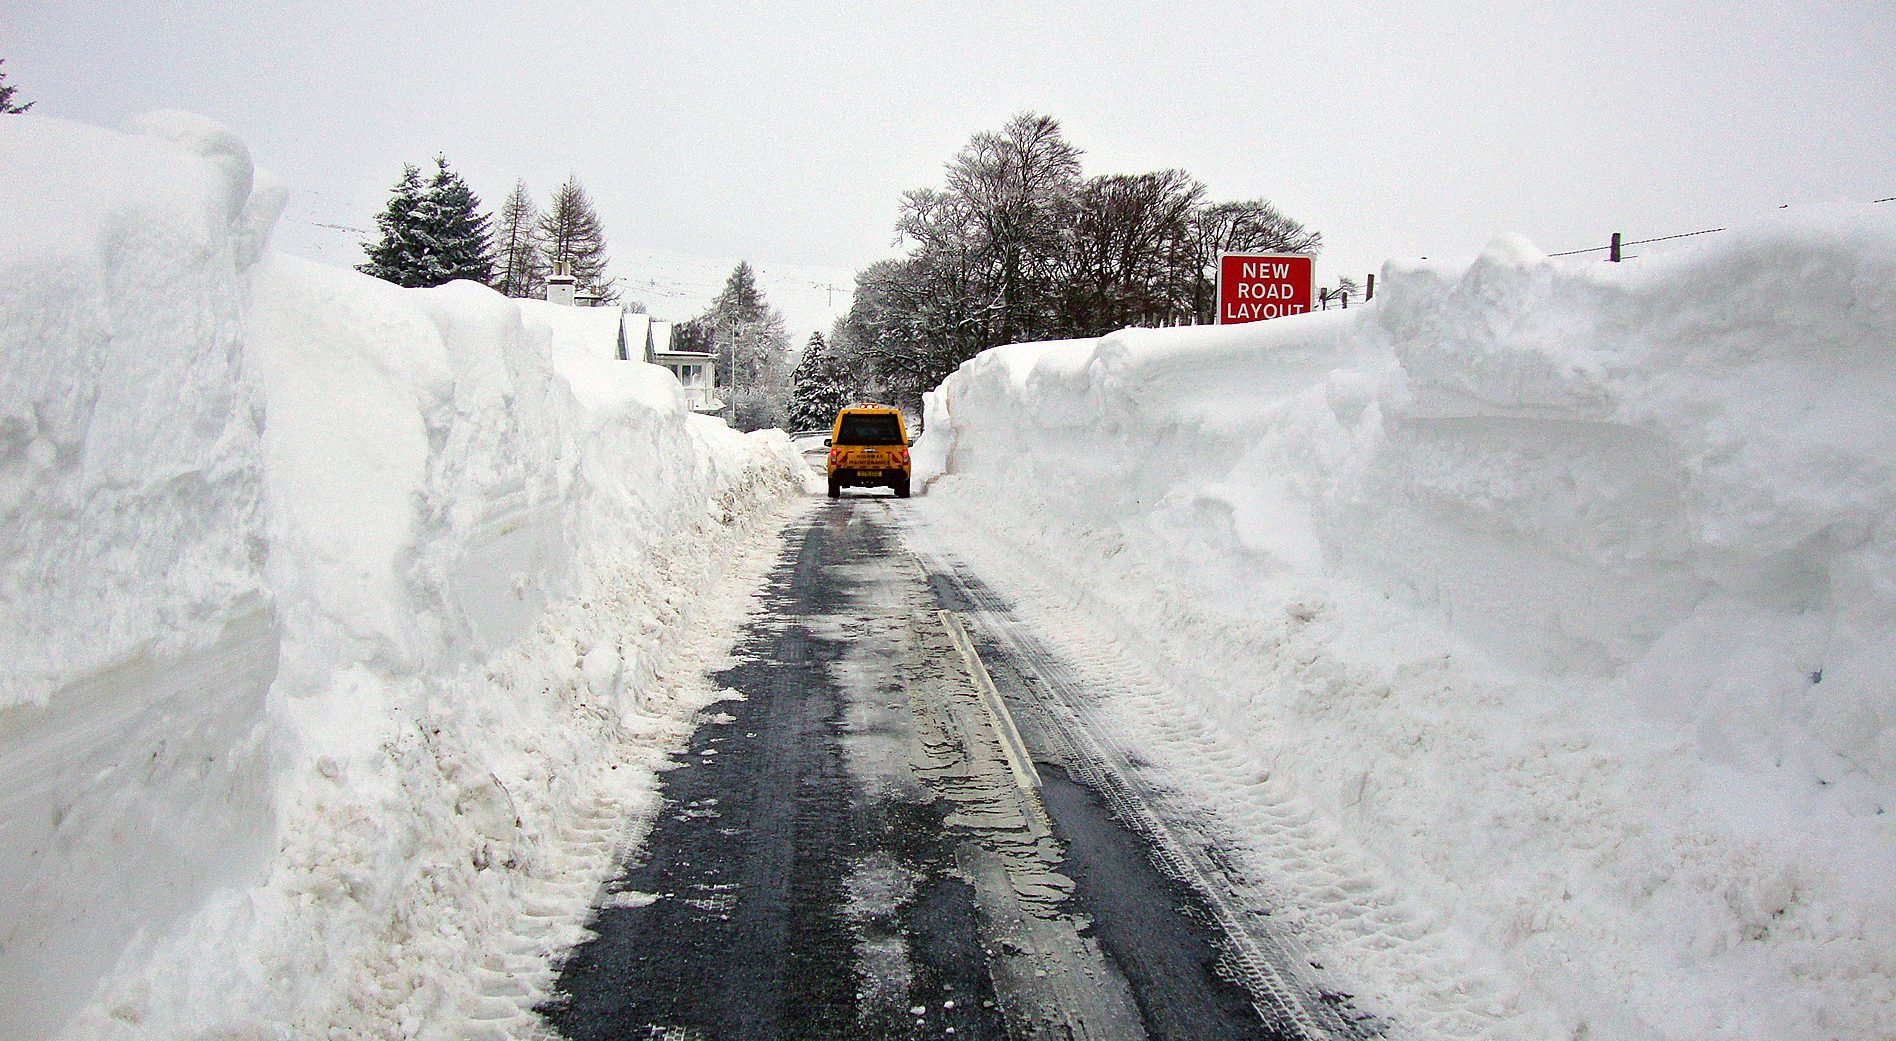 Snow clearing on the A822 in Perthshire during a previous hard winter.